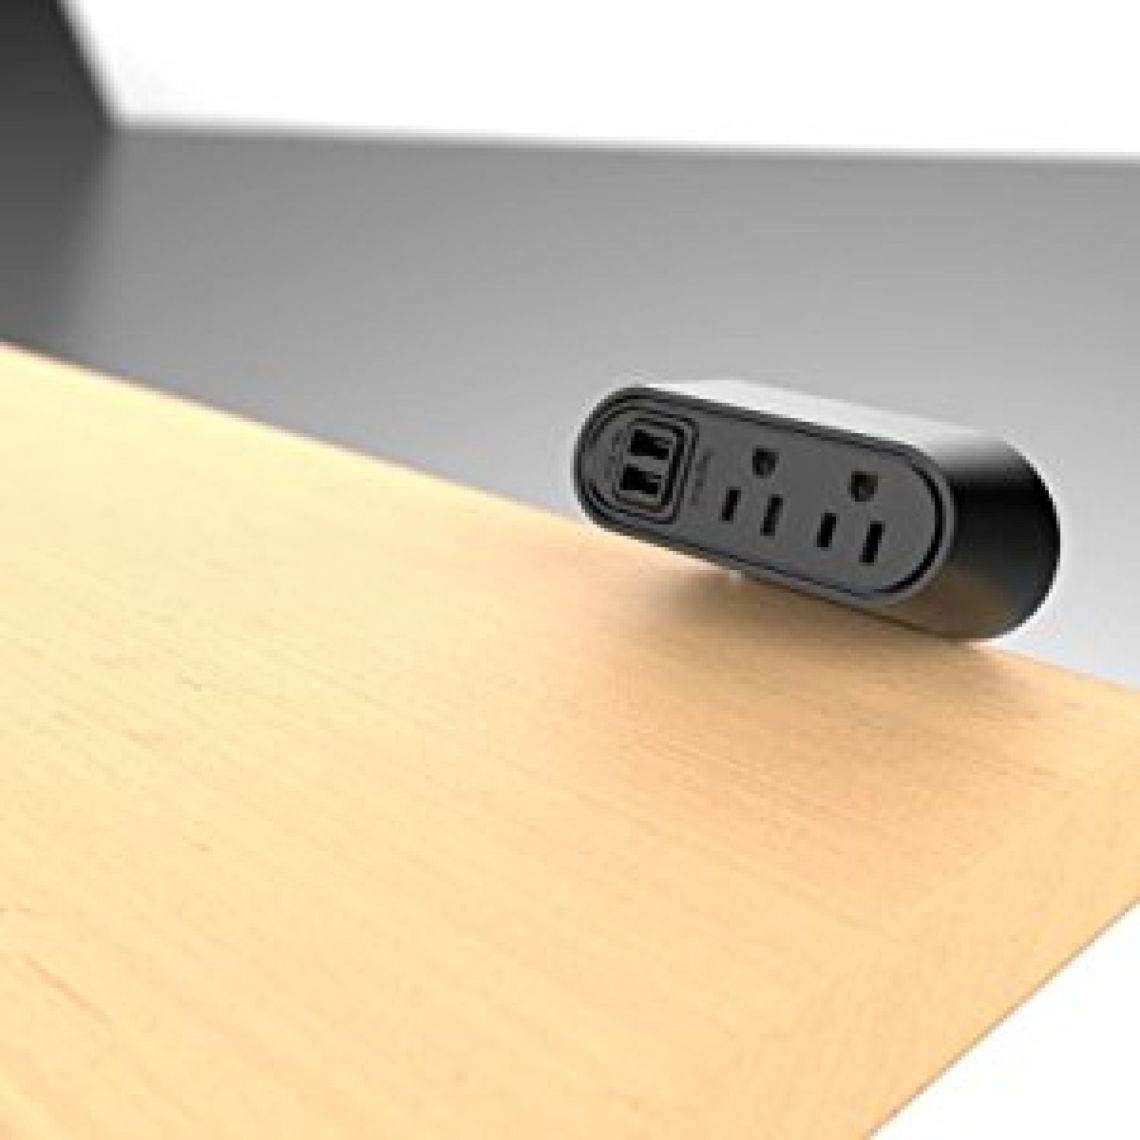 Legrand - WMC220BK Desktop Mounted USB Charging and Power Center, Power Strip with 2 Power Outlets And 2 USB Outlets for Charging, Black - - Amazon.com